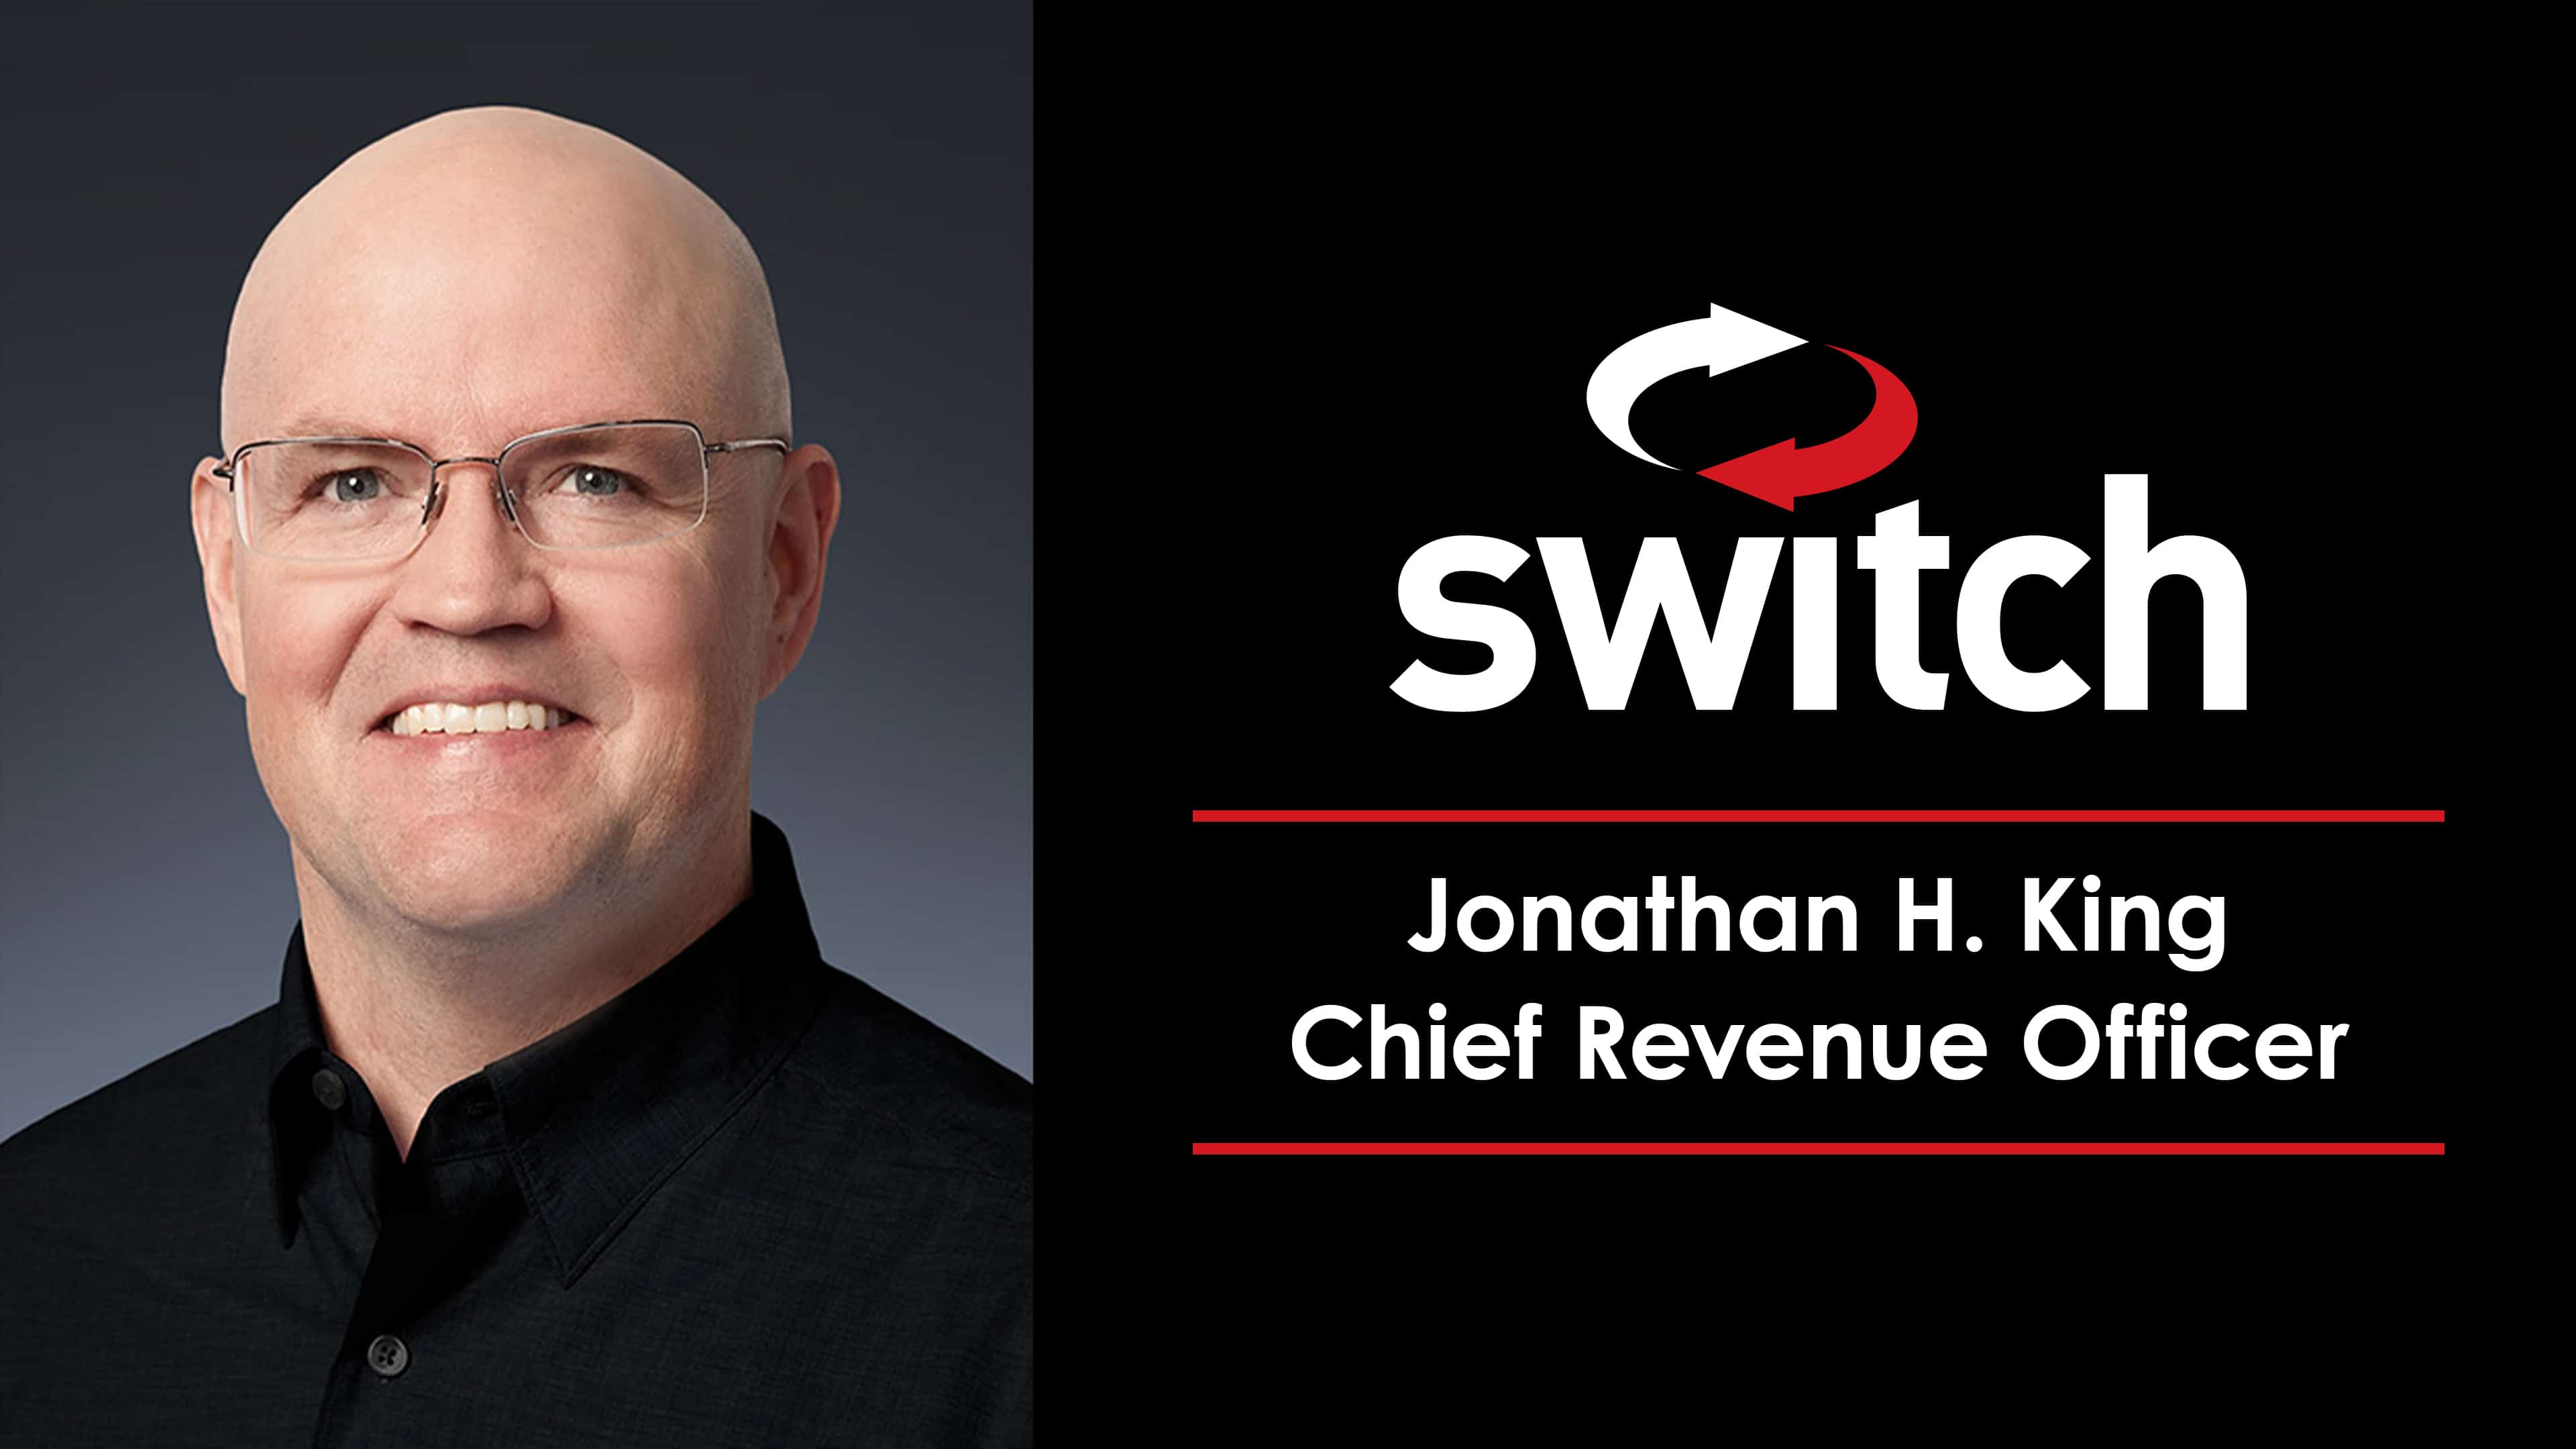 Switch Adds Technology Leader Jonathan H. King as Chief Revenue Officer